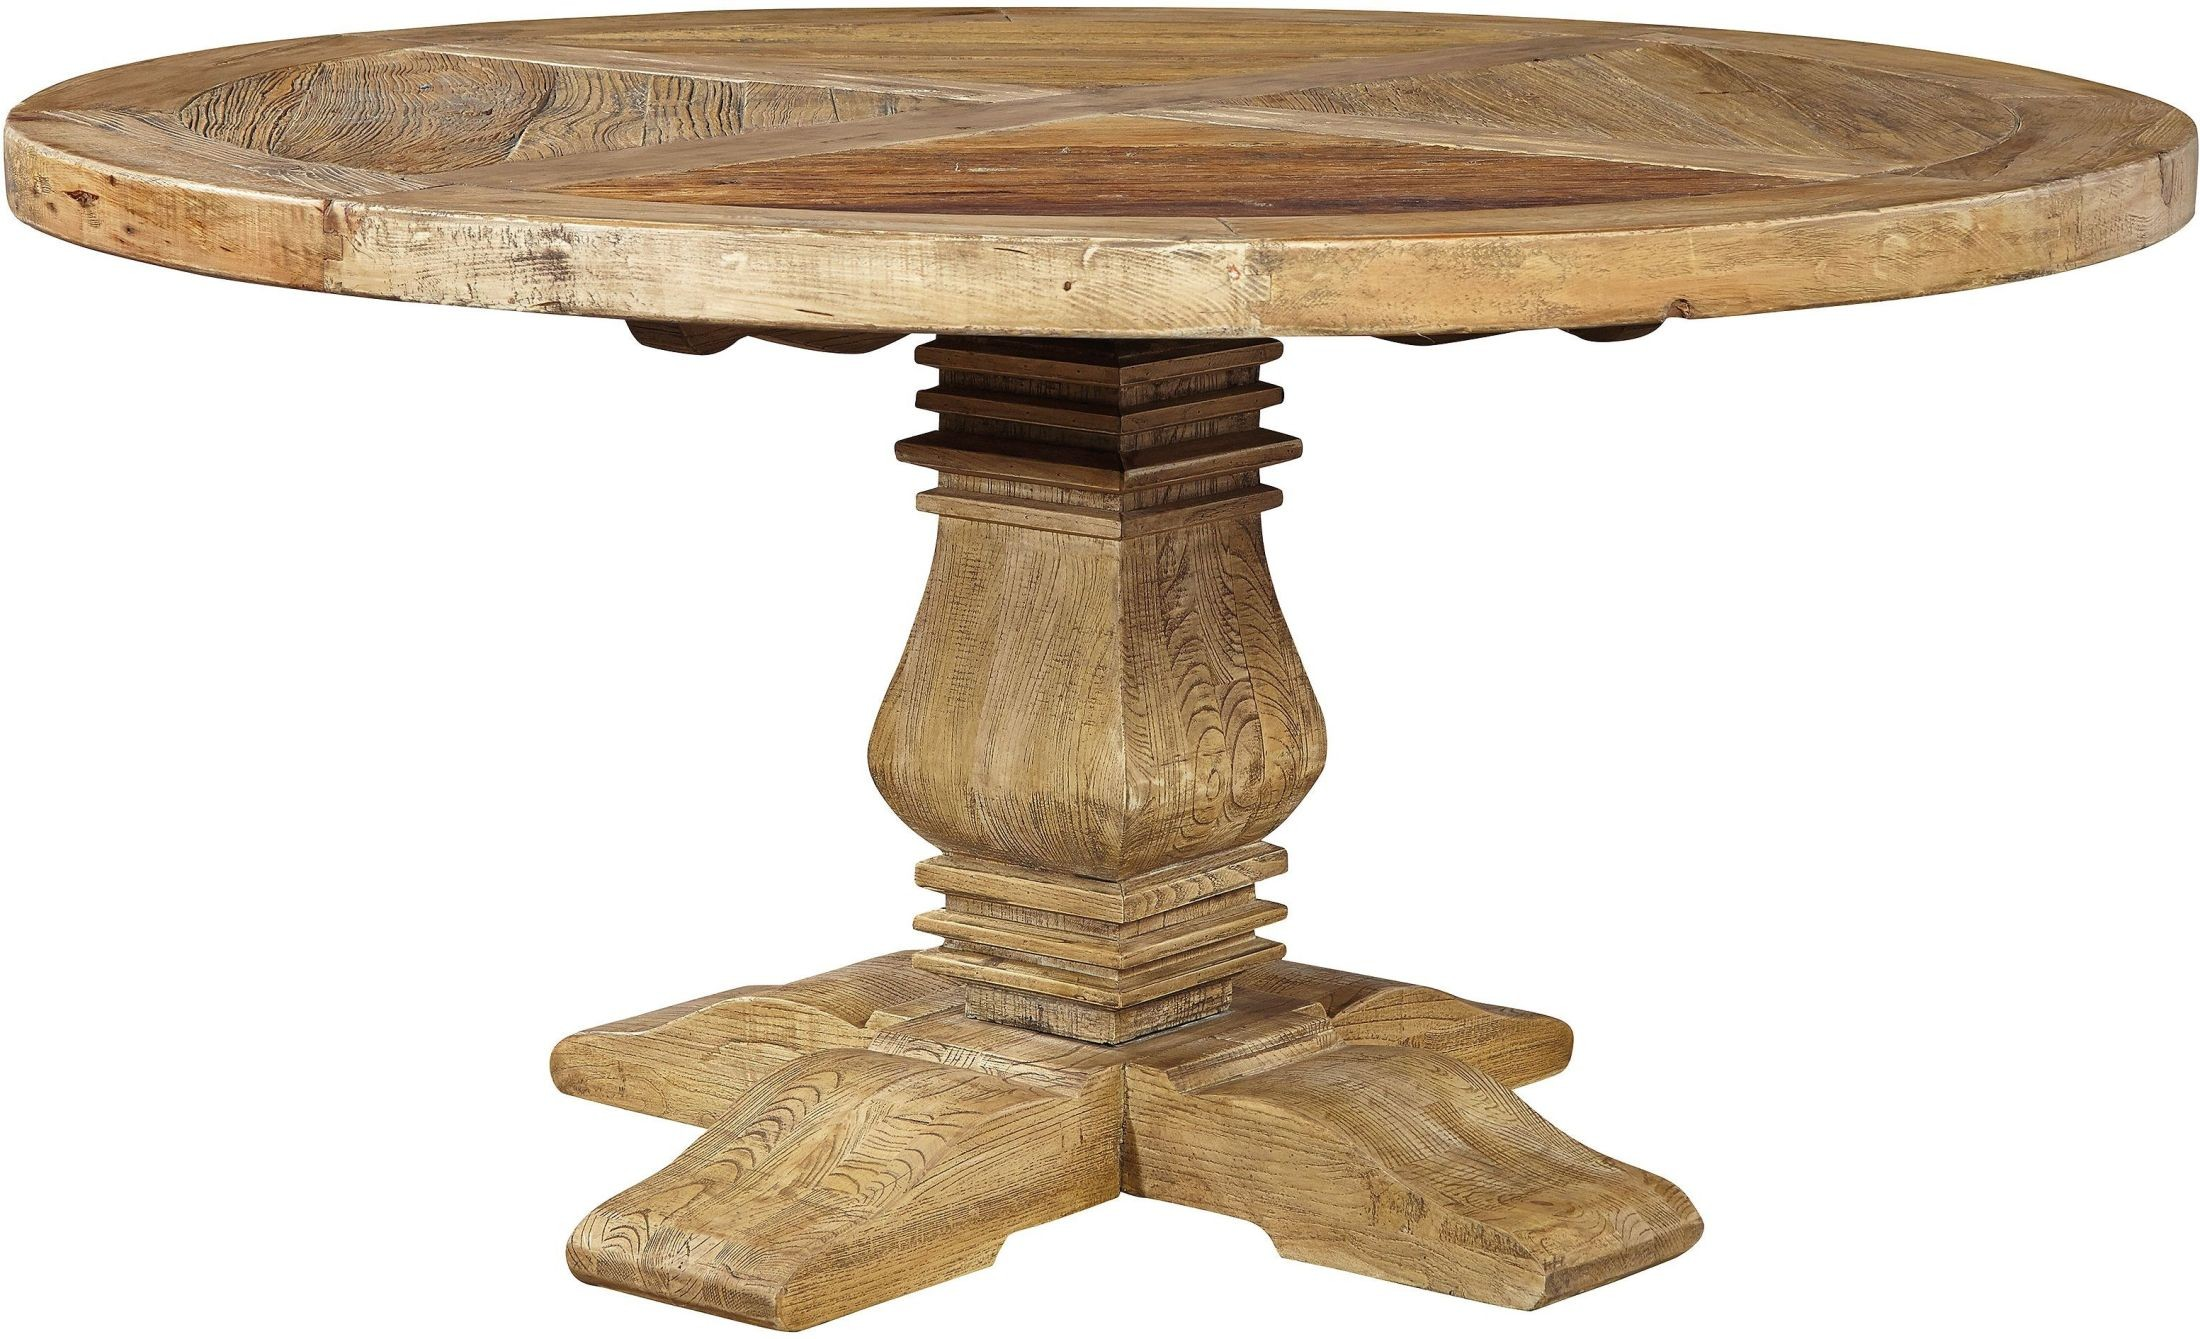 Manor house distressed round dining table from furniture for Distressed round dining table